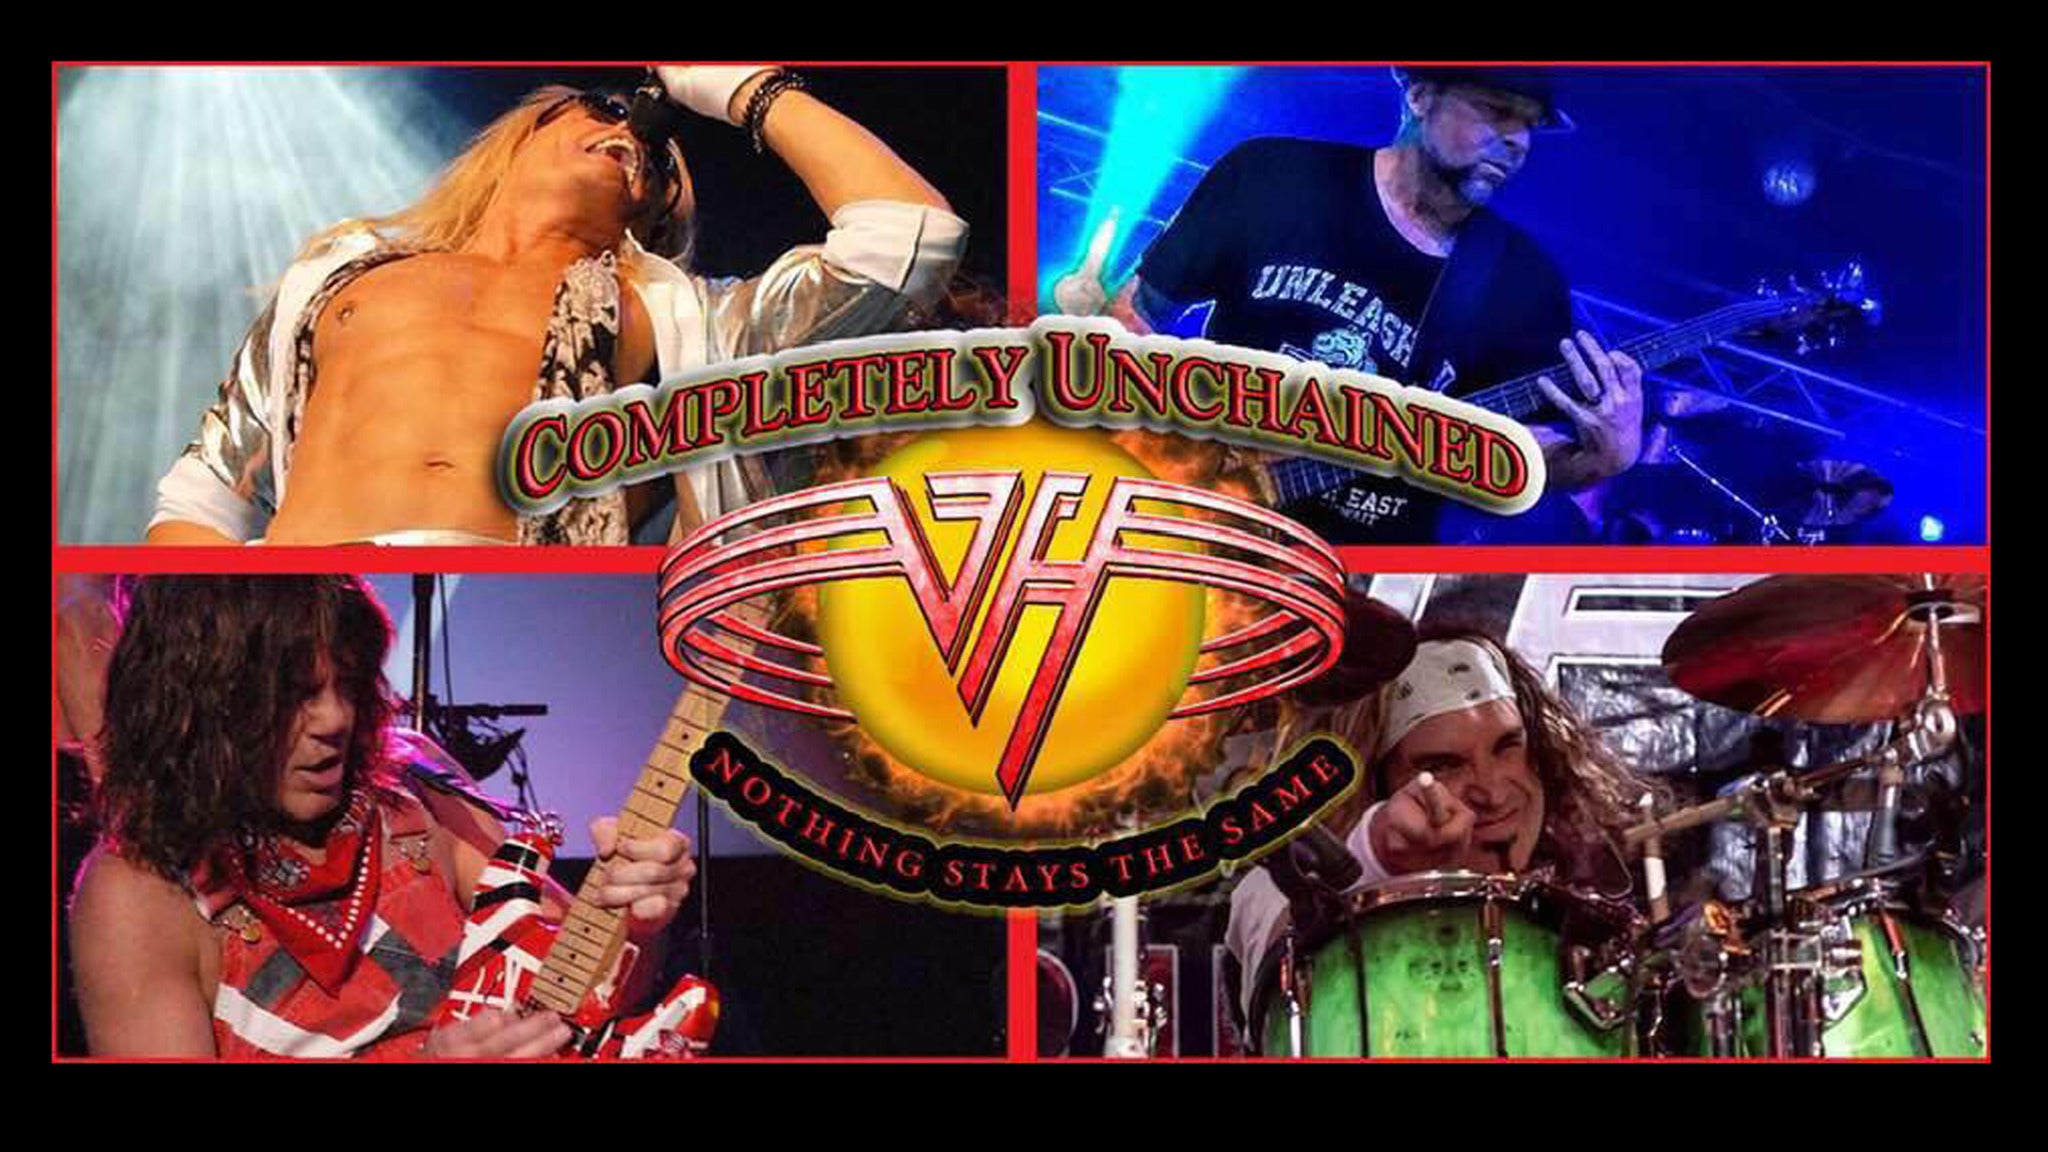 Completely Unchained - Van Halen Tribute at Revolution Live